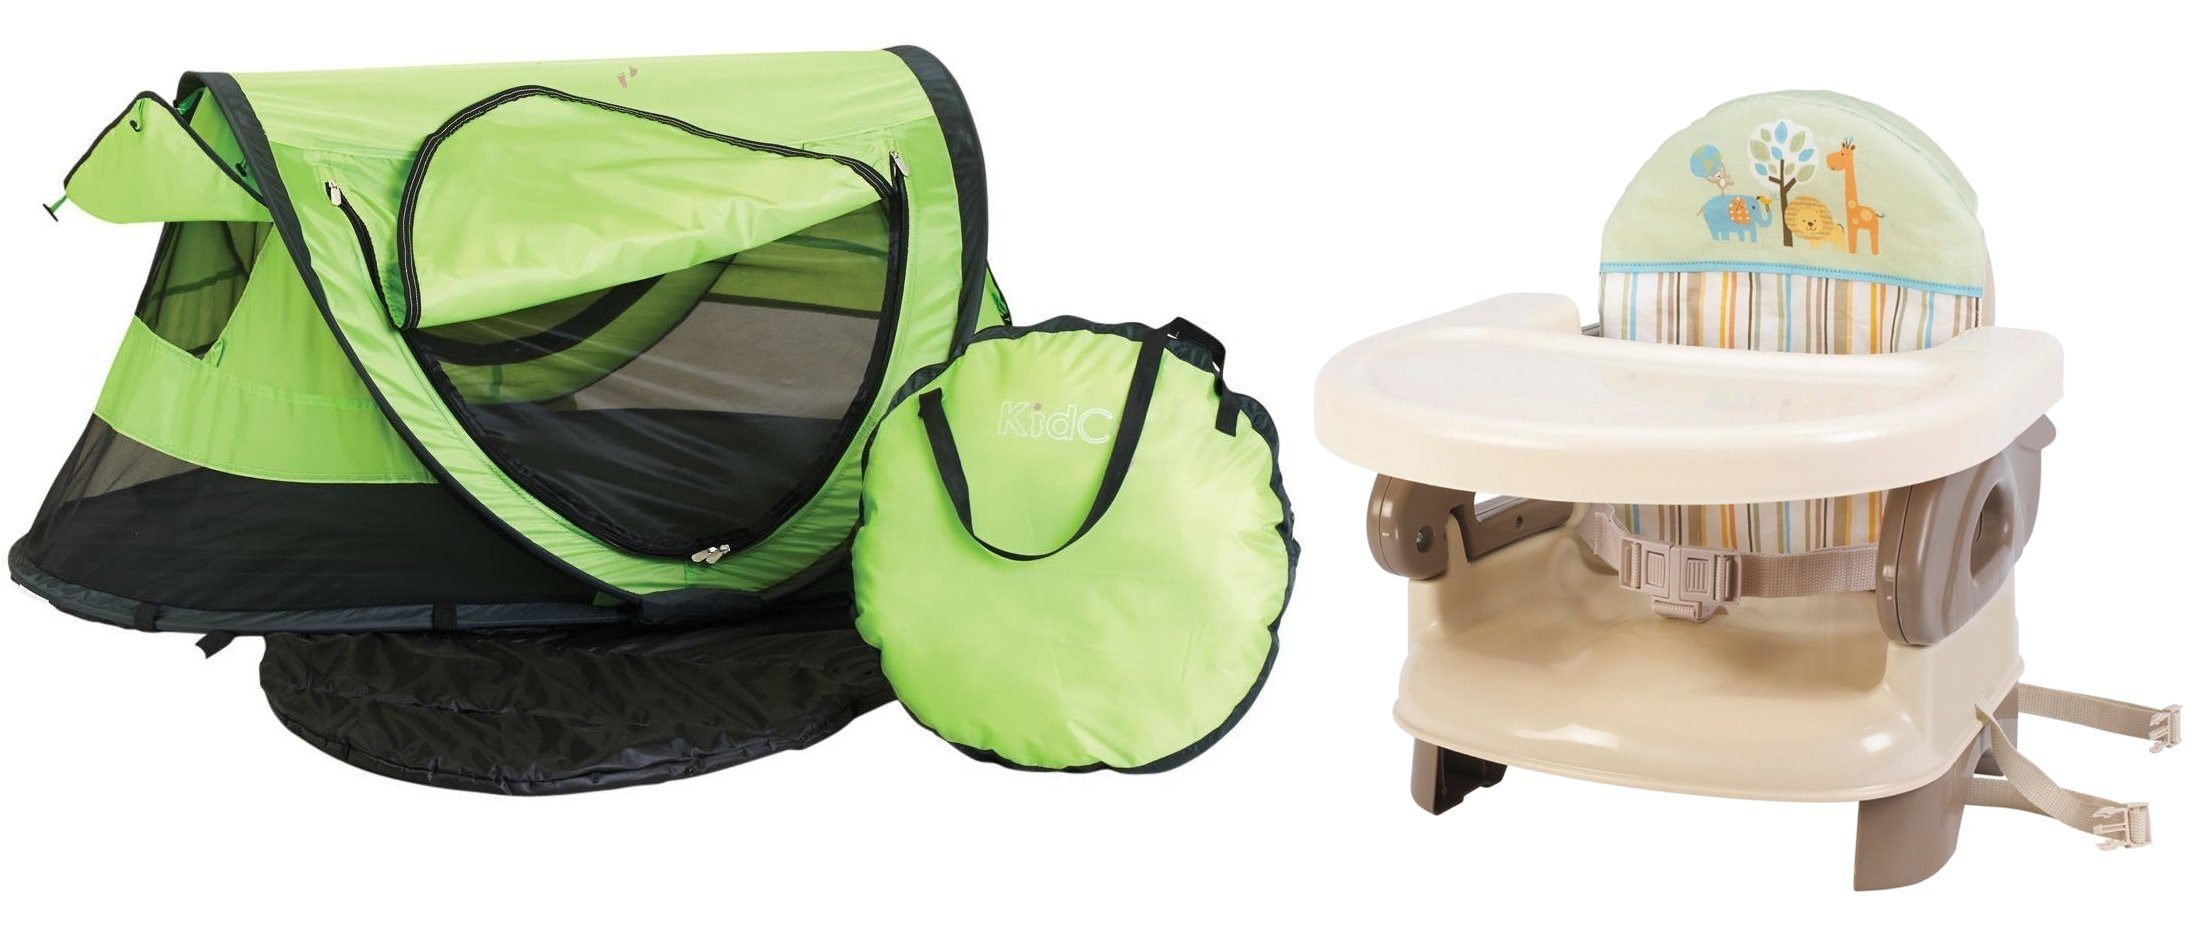 KidCo Peapod Plus Portable Travel Bed with Deluxe Comfort Booster Seat, Kiwi